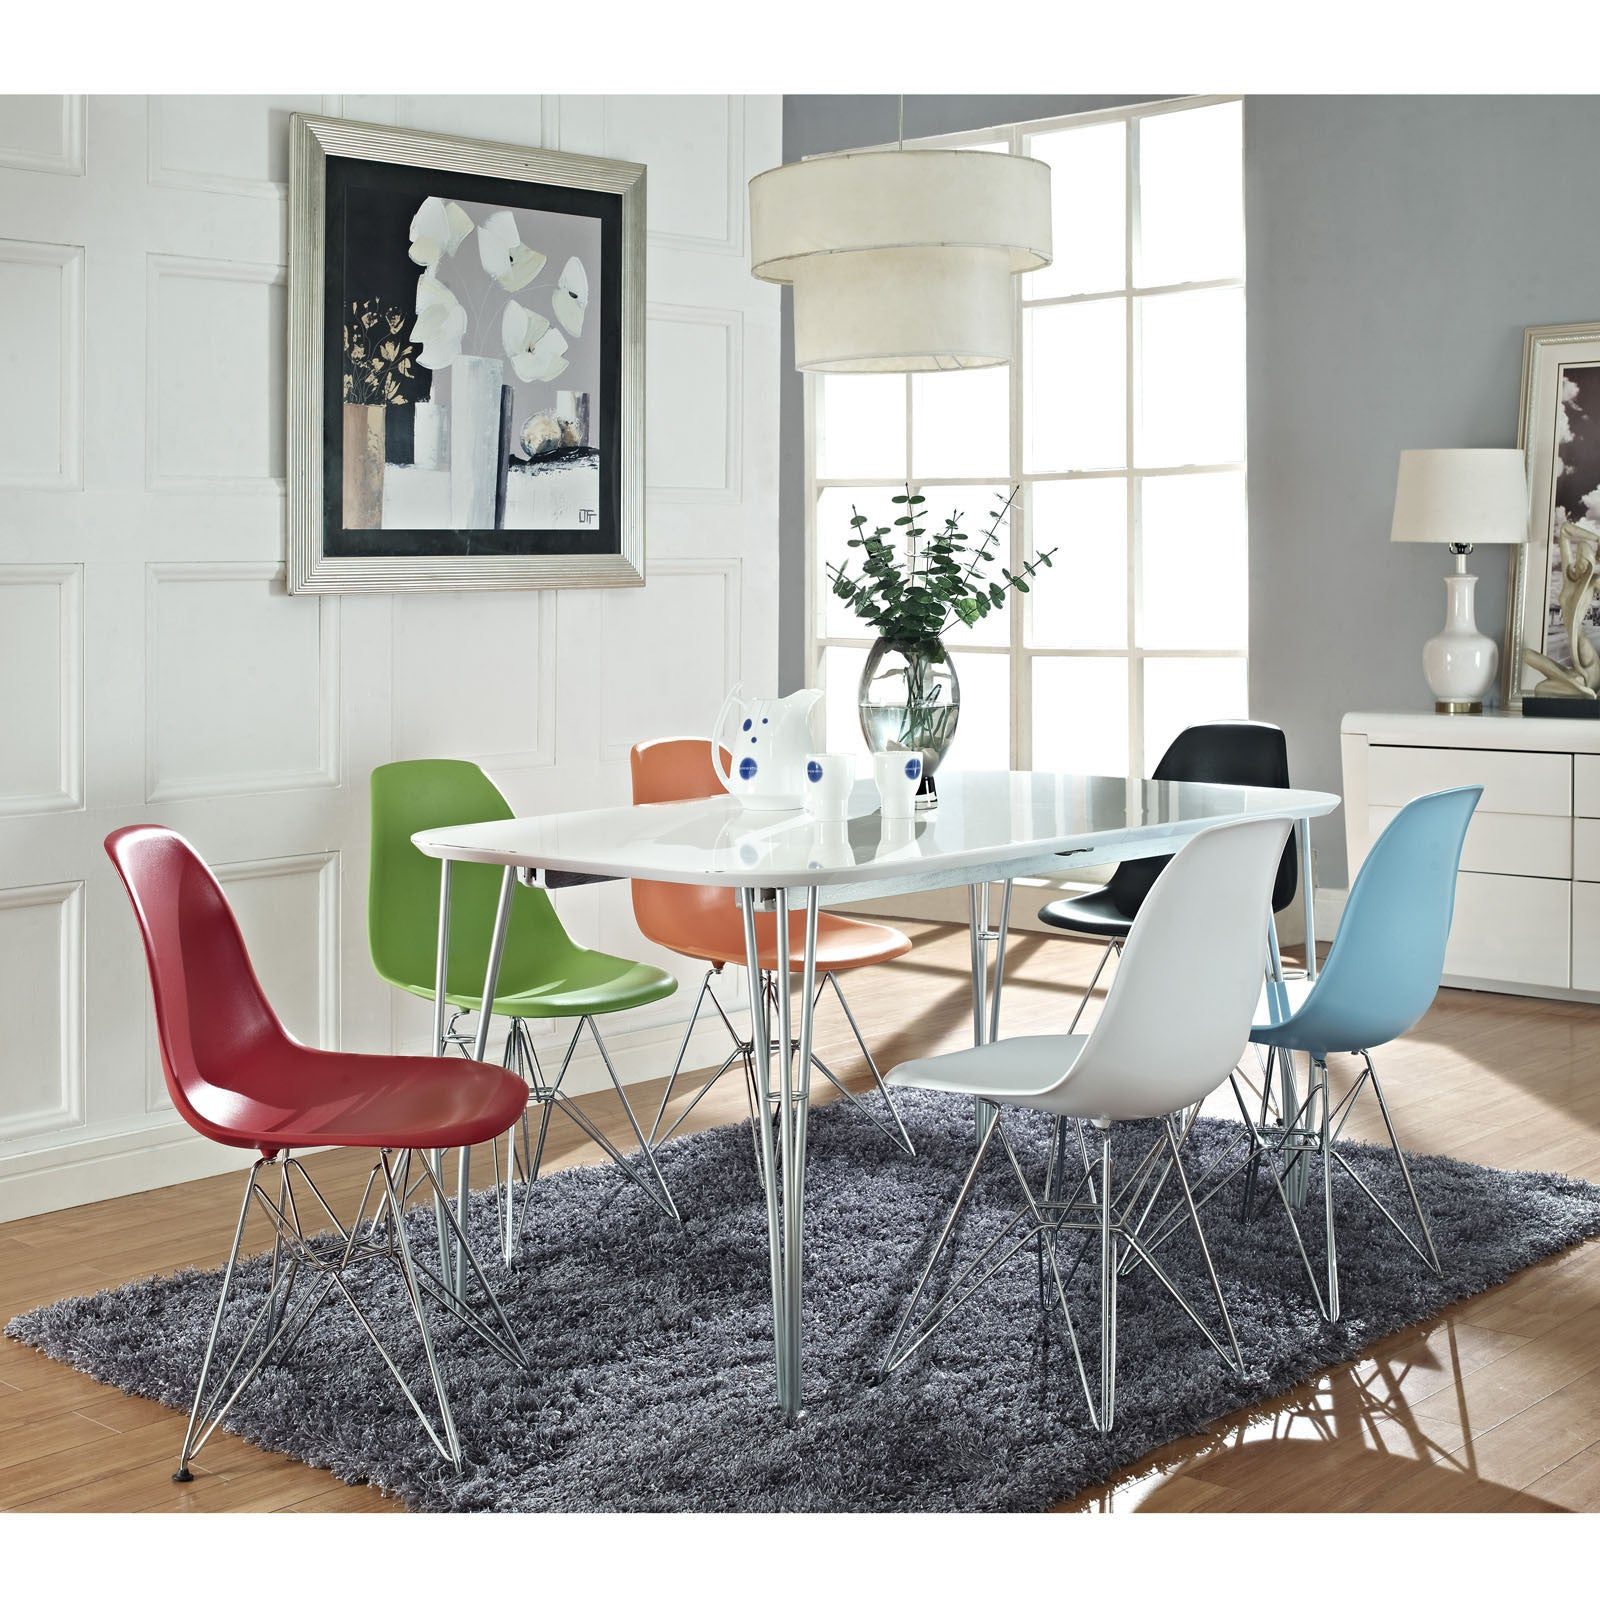 Mid Century Modern Dining chairs Our Top 5 EMFURN